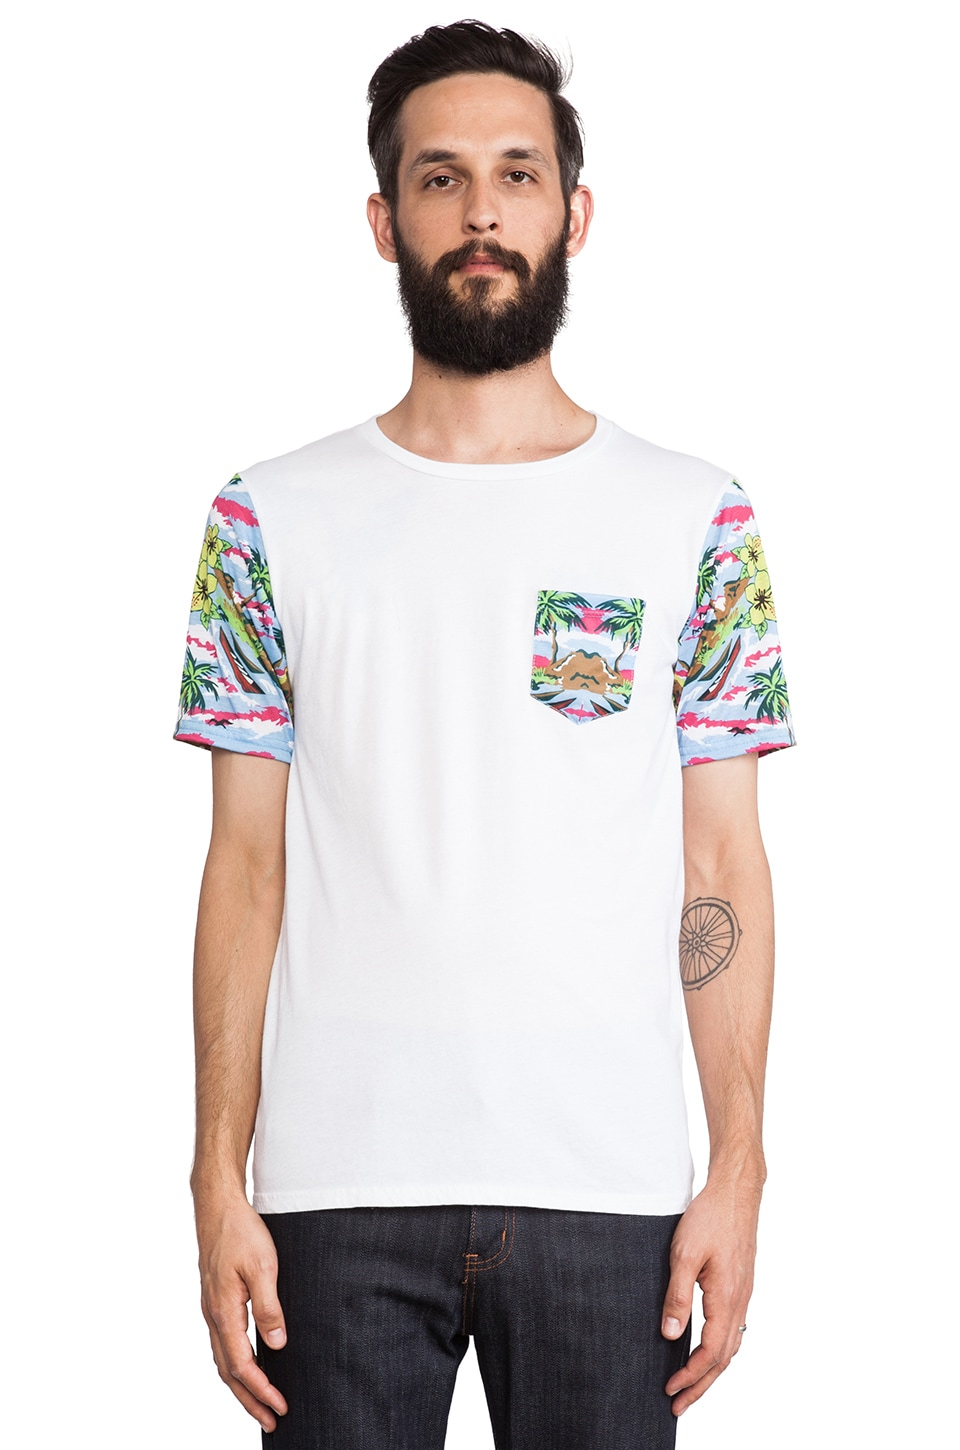 Altru Tropicalia Tee in Multi